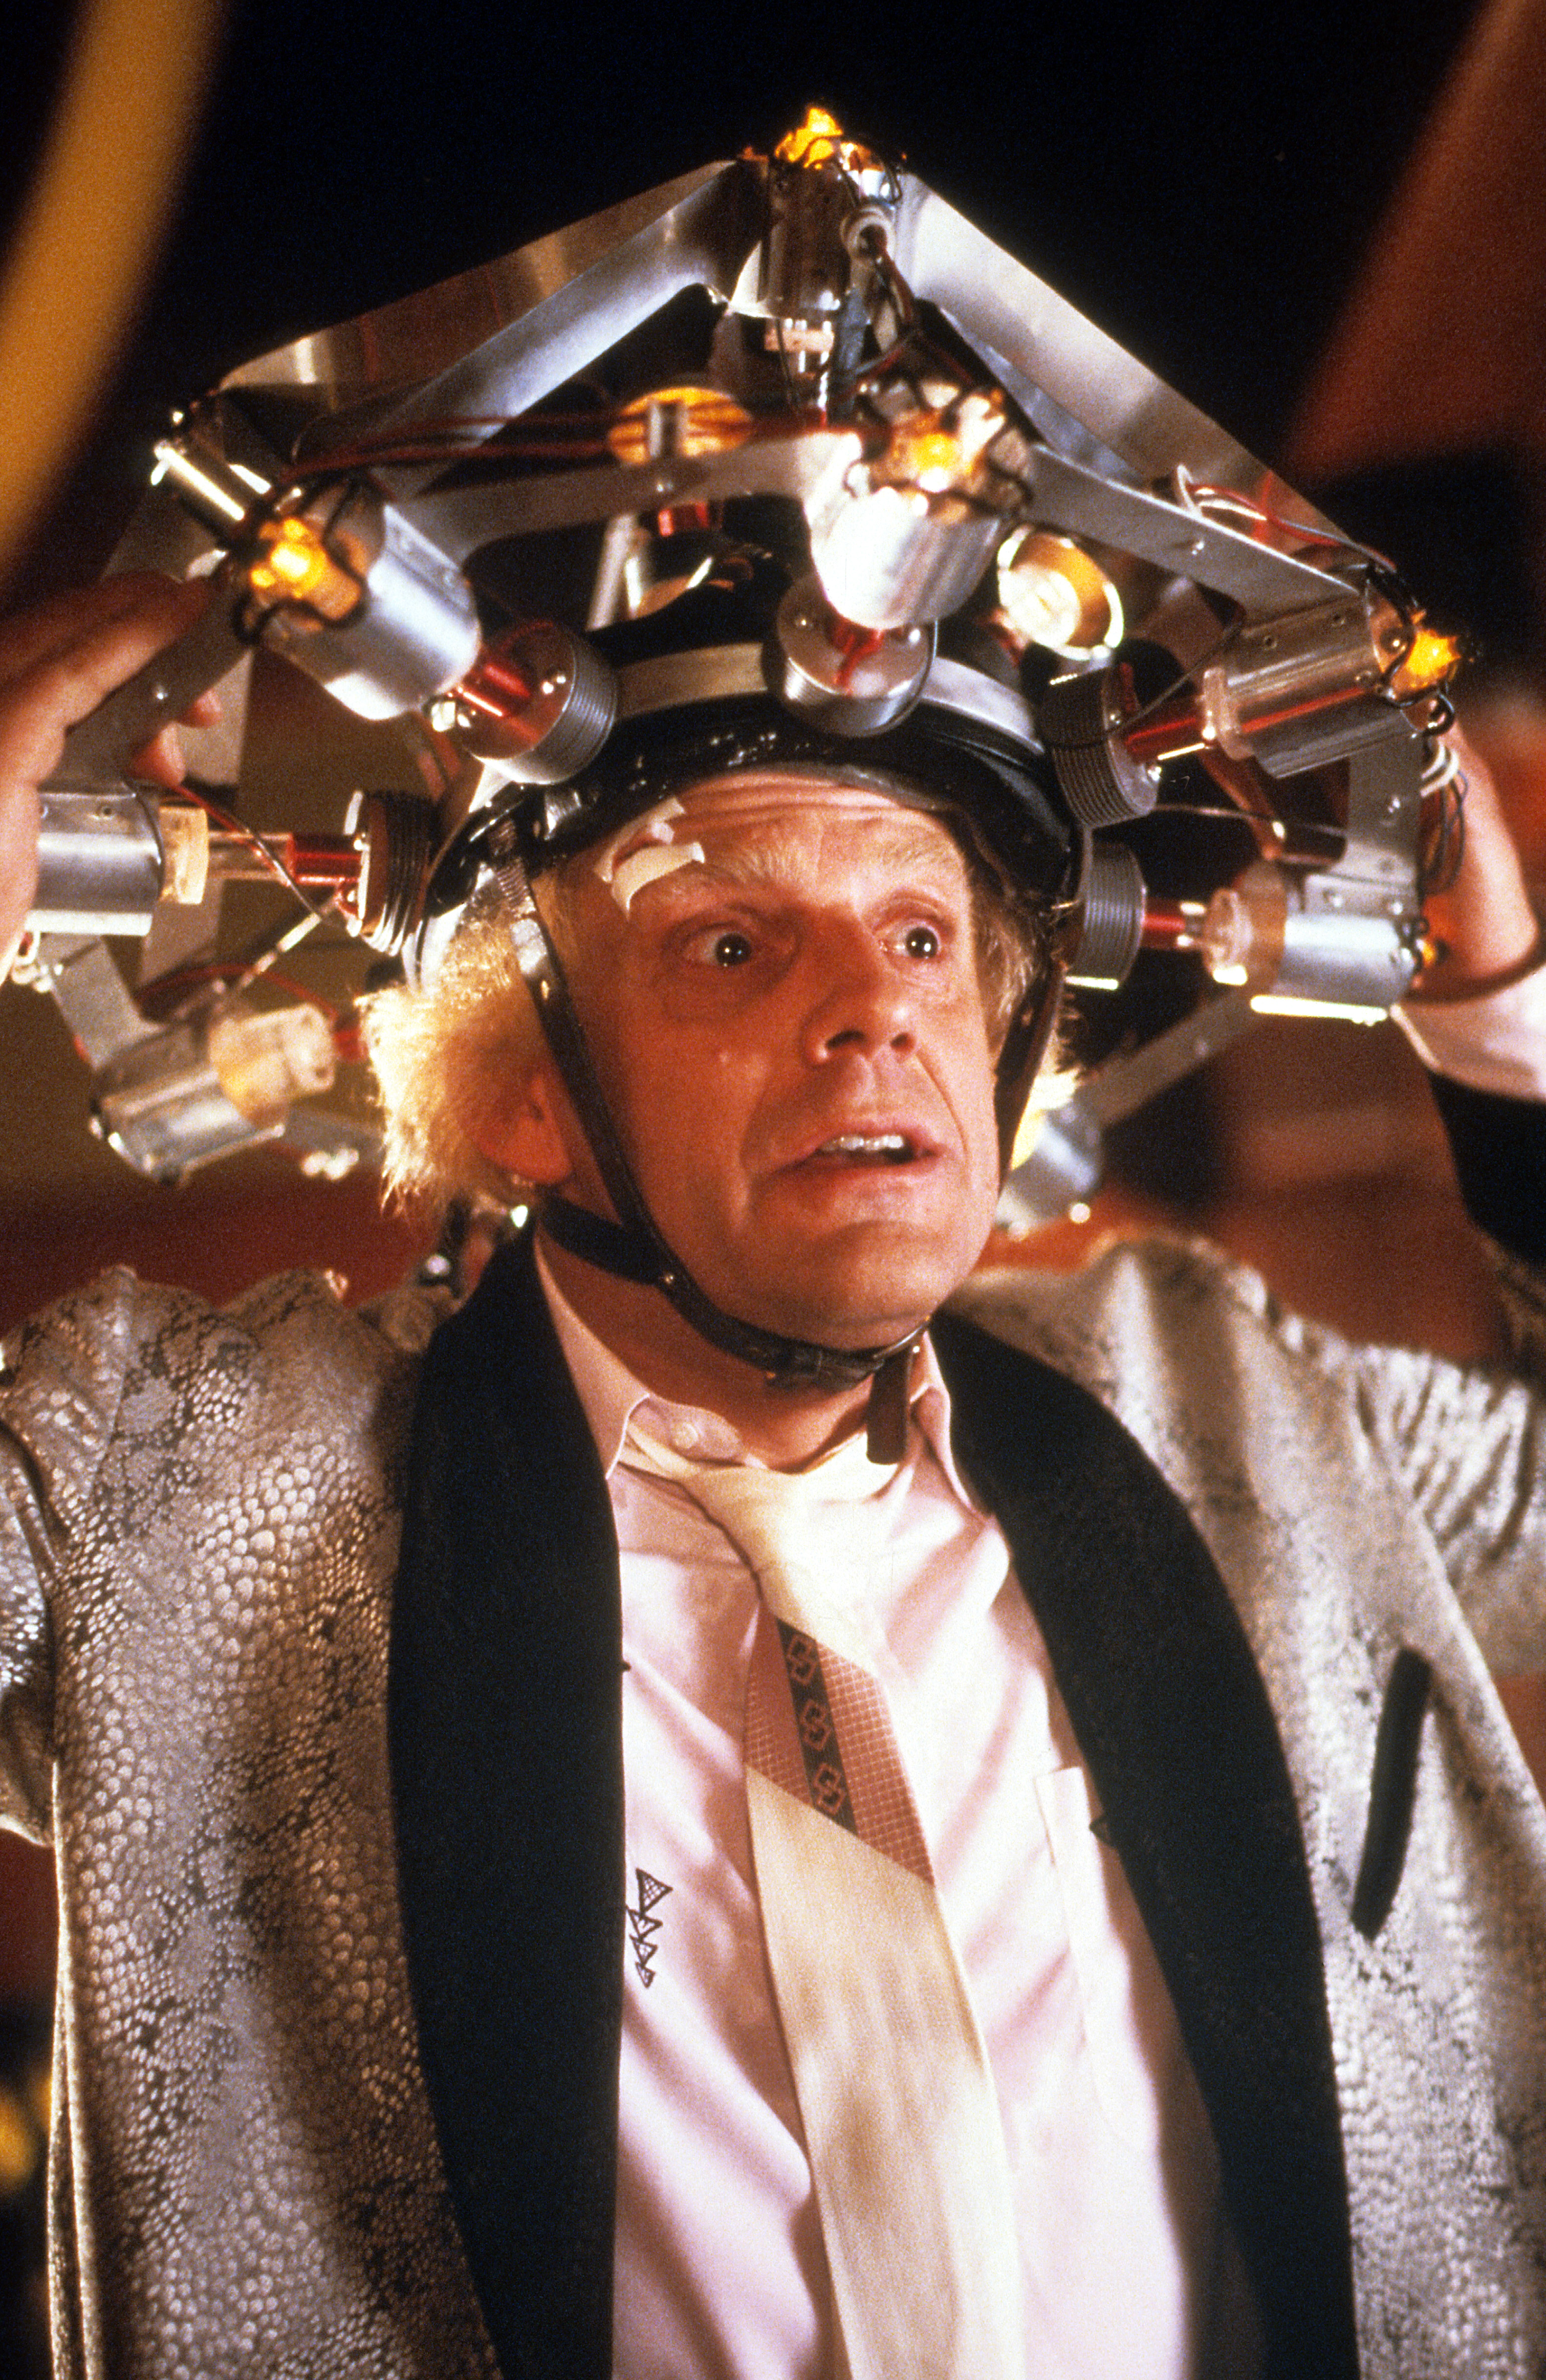 Christopher Lloyd wearing concoction on his head in a scene from the film 'Back To The Future', 1985